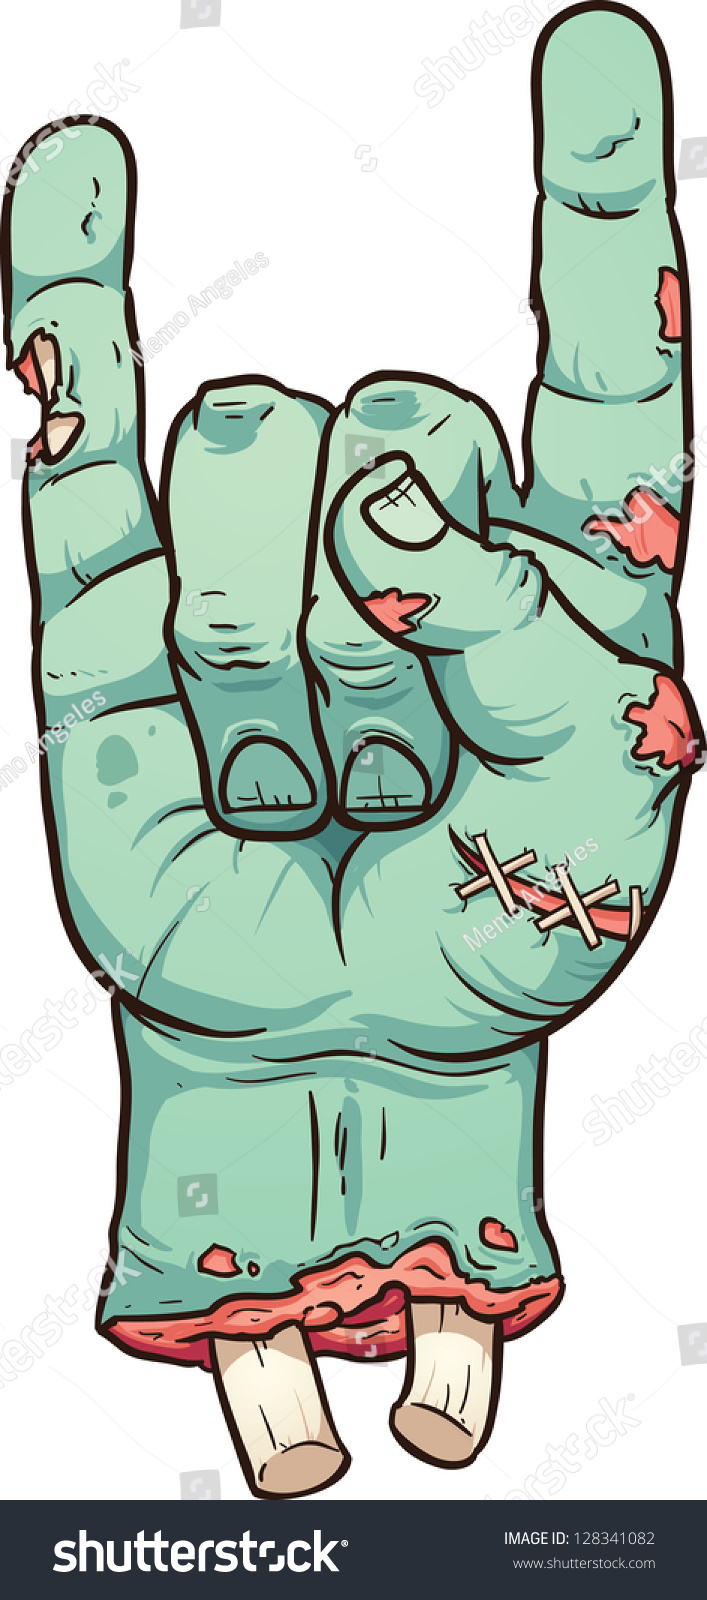 Severed zombie hand making rock sign stock vector - Clipart illustration ...